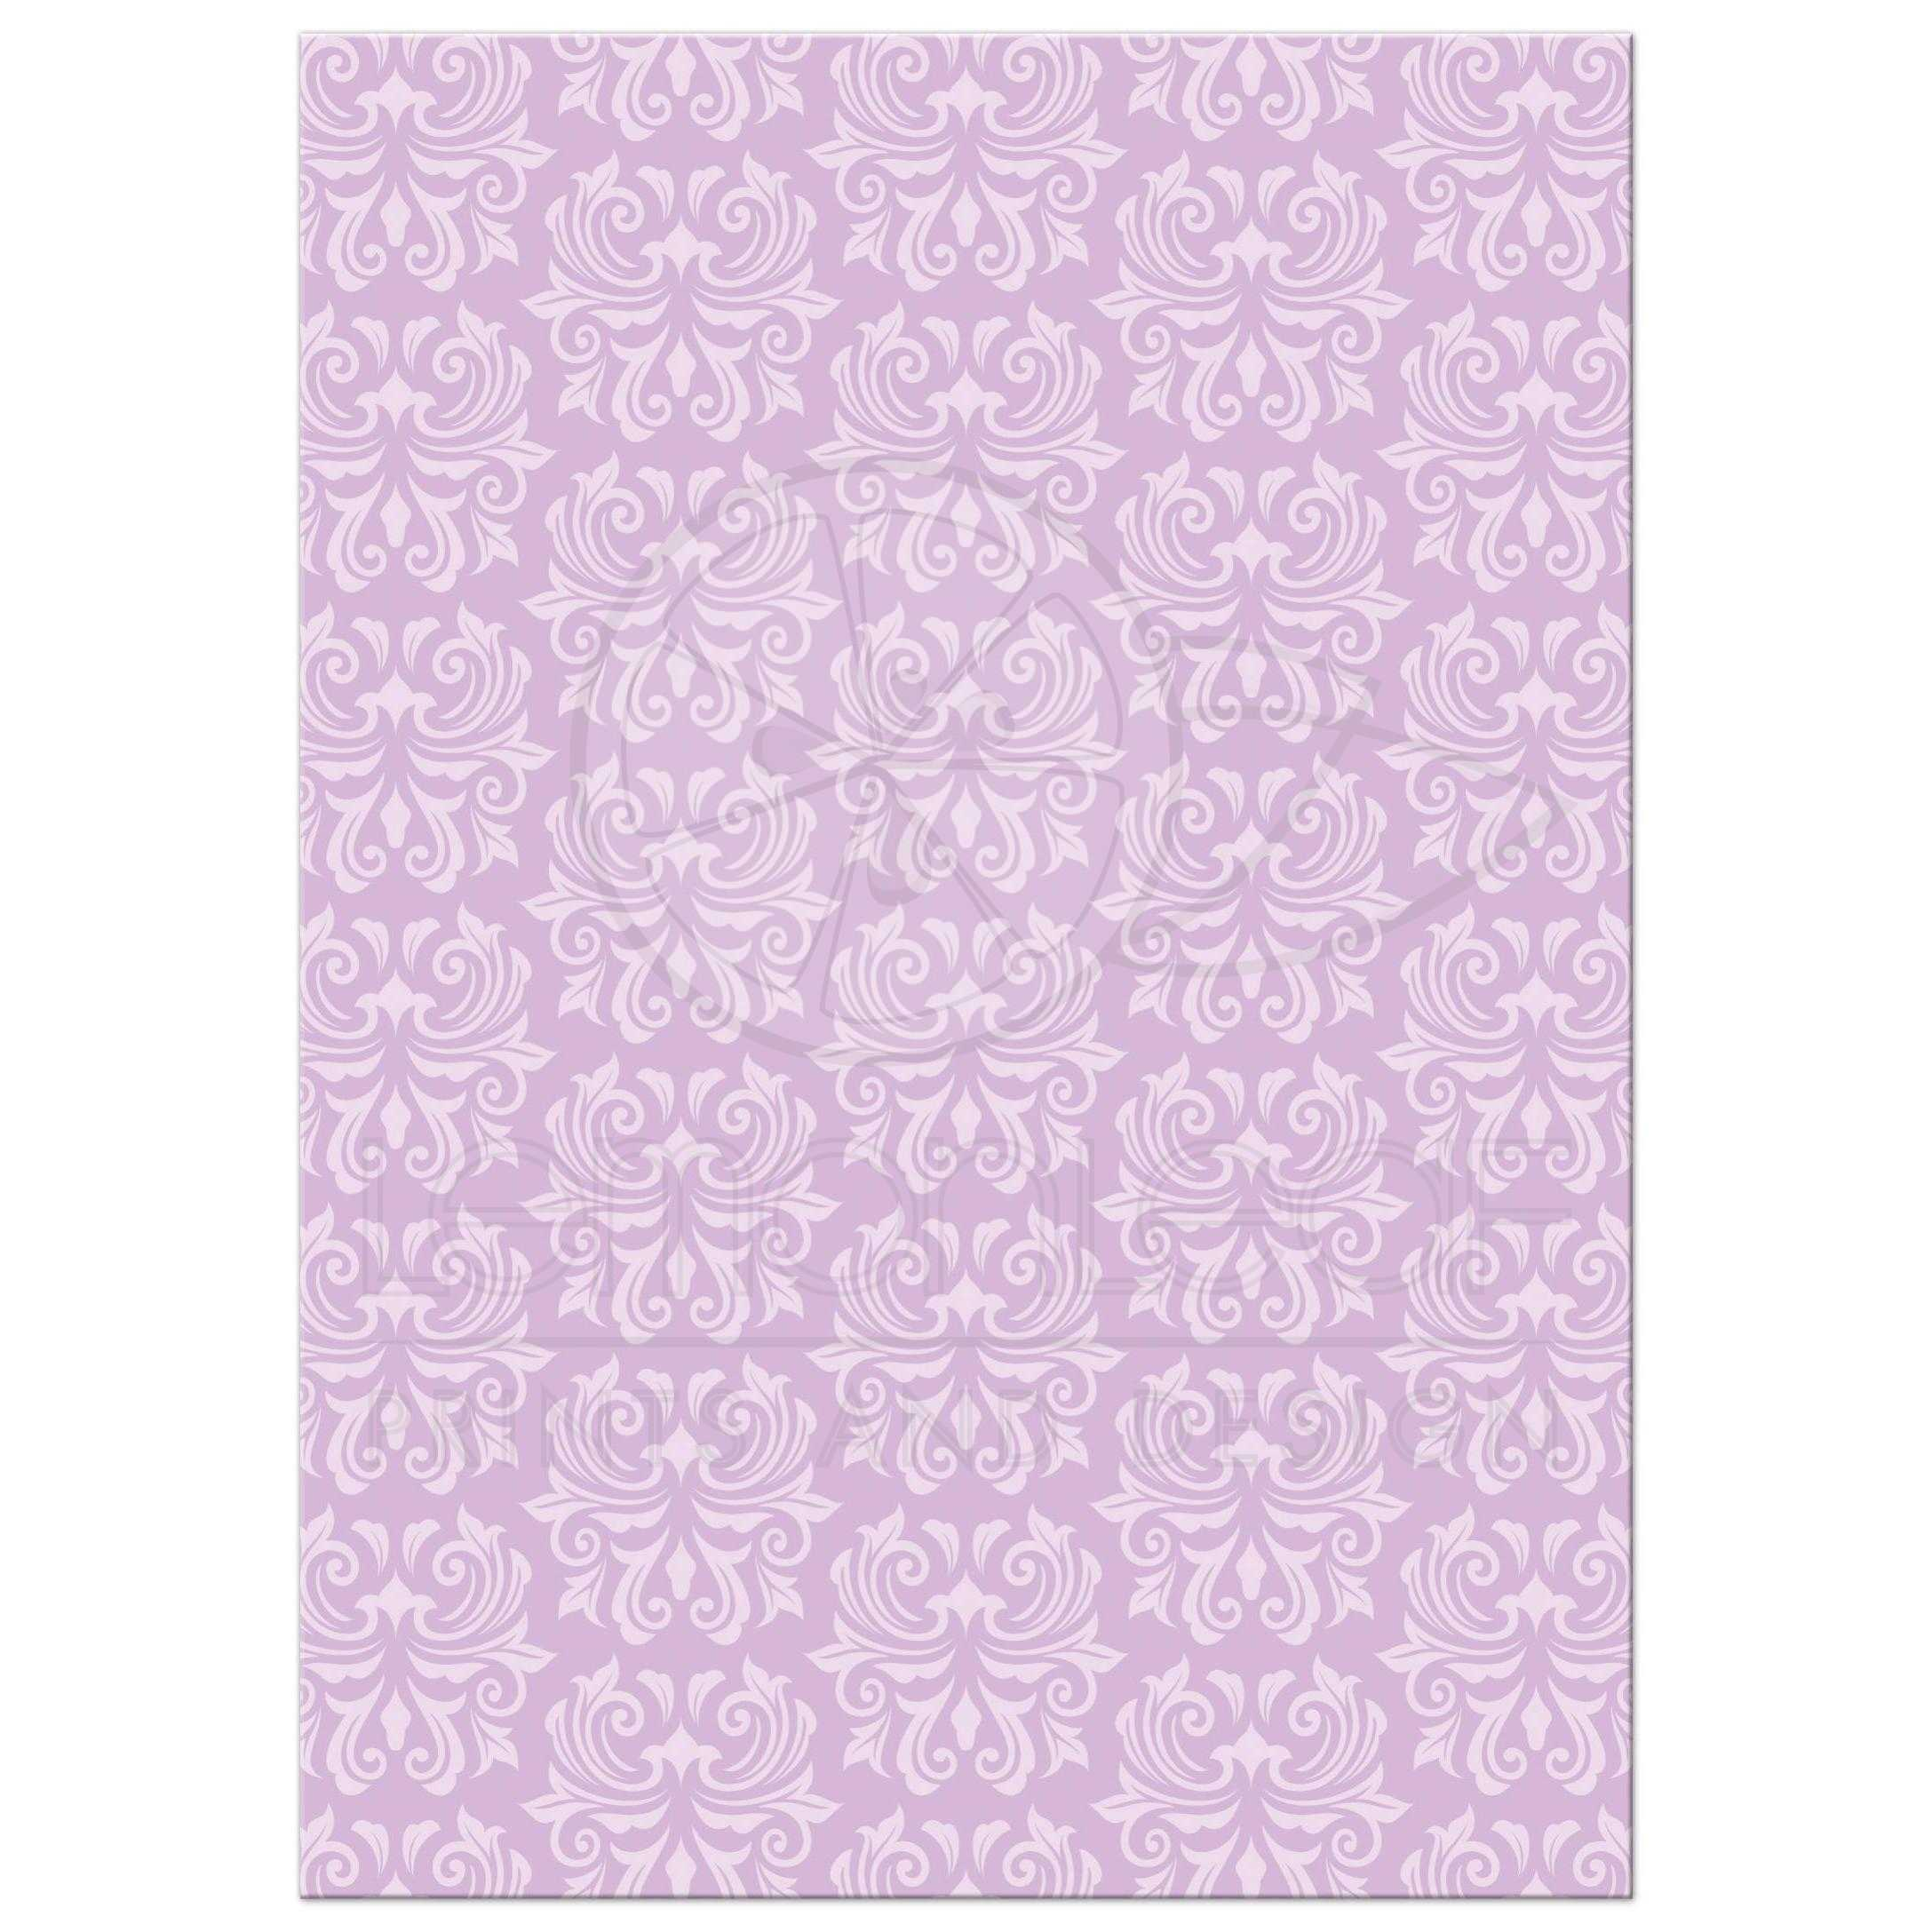 Ornate Purple Damask First Holy Communion Or Confirmation